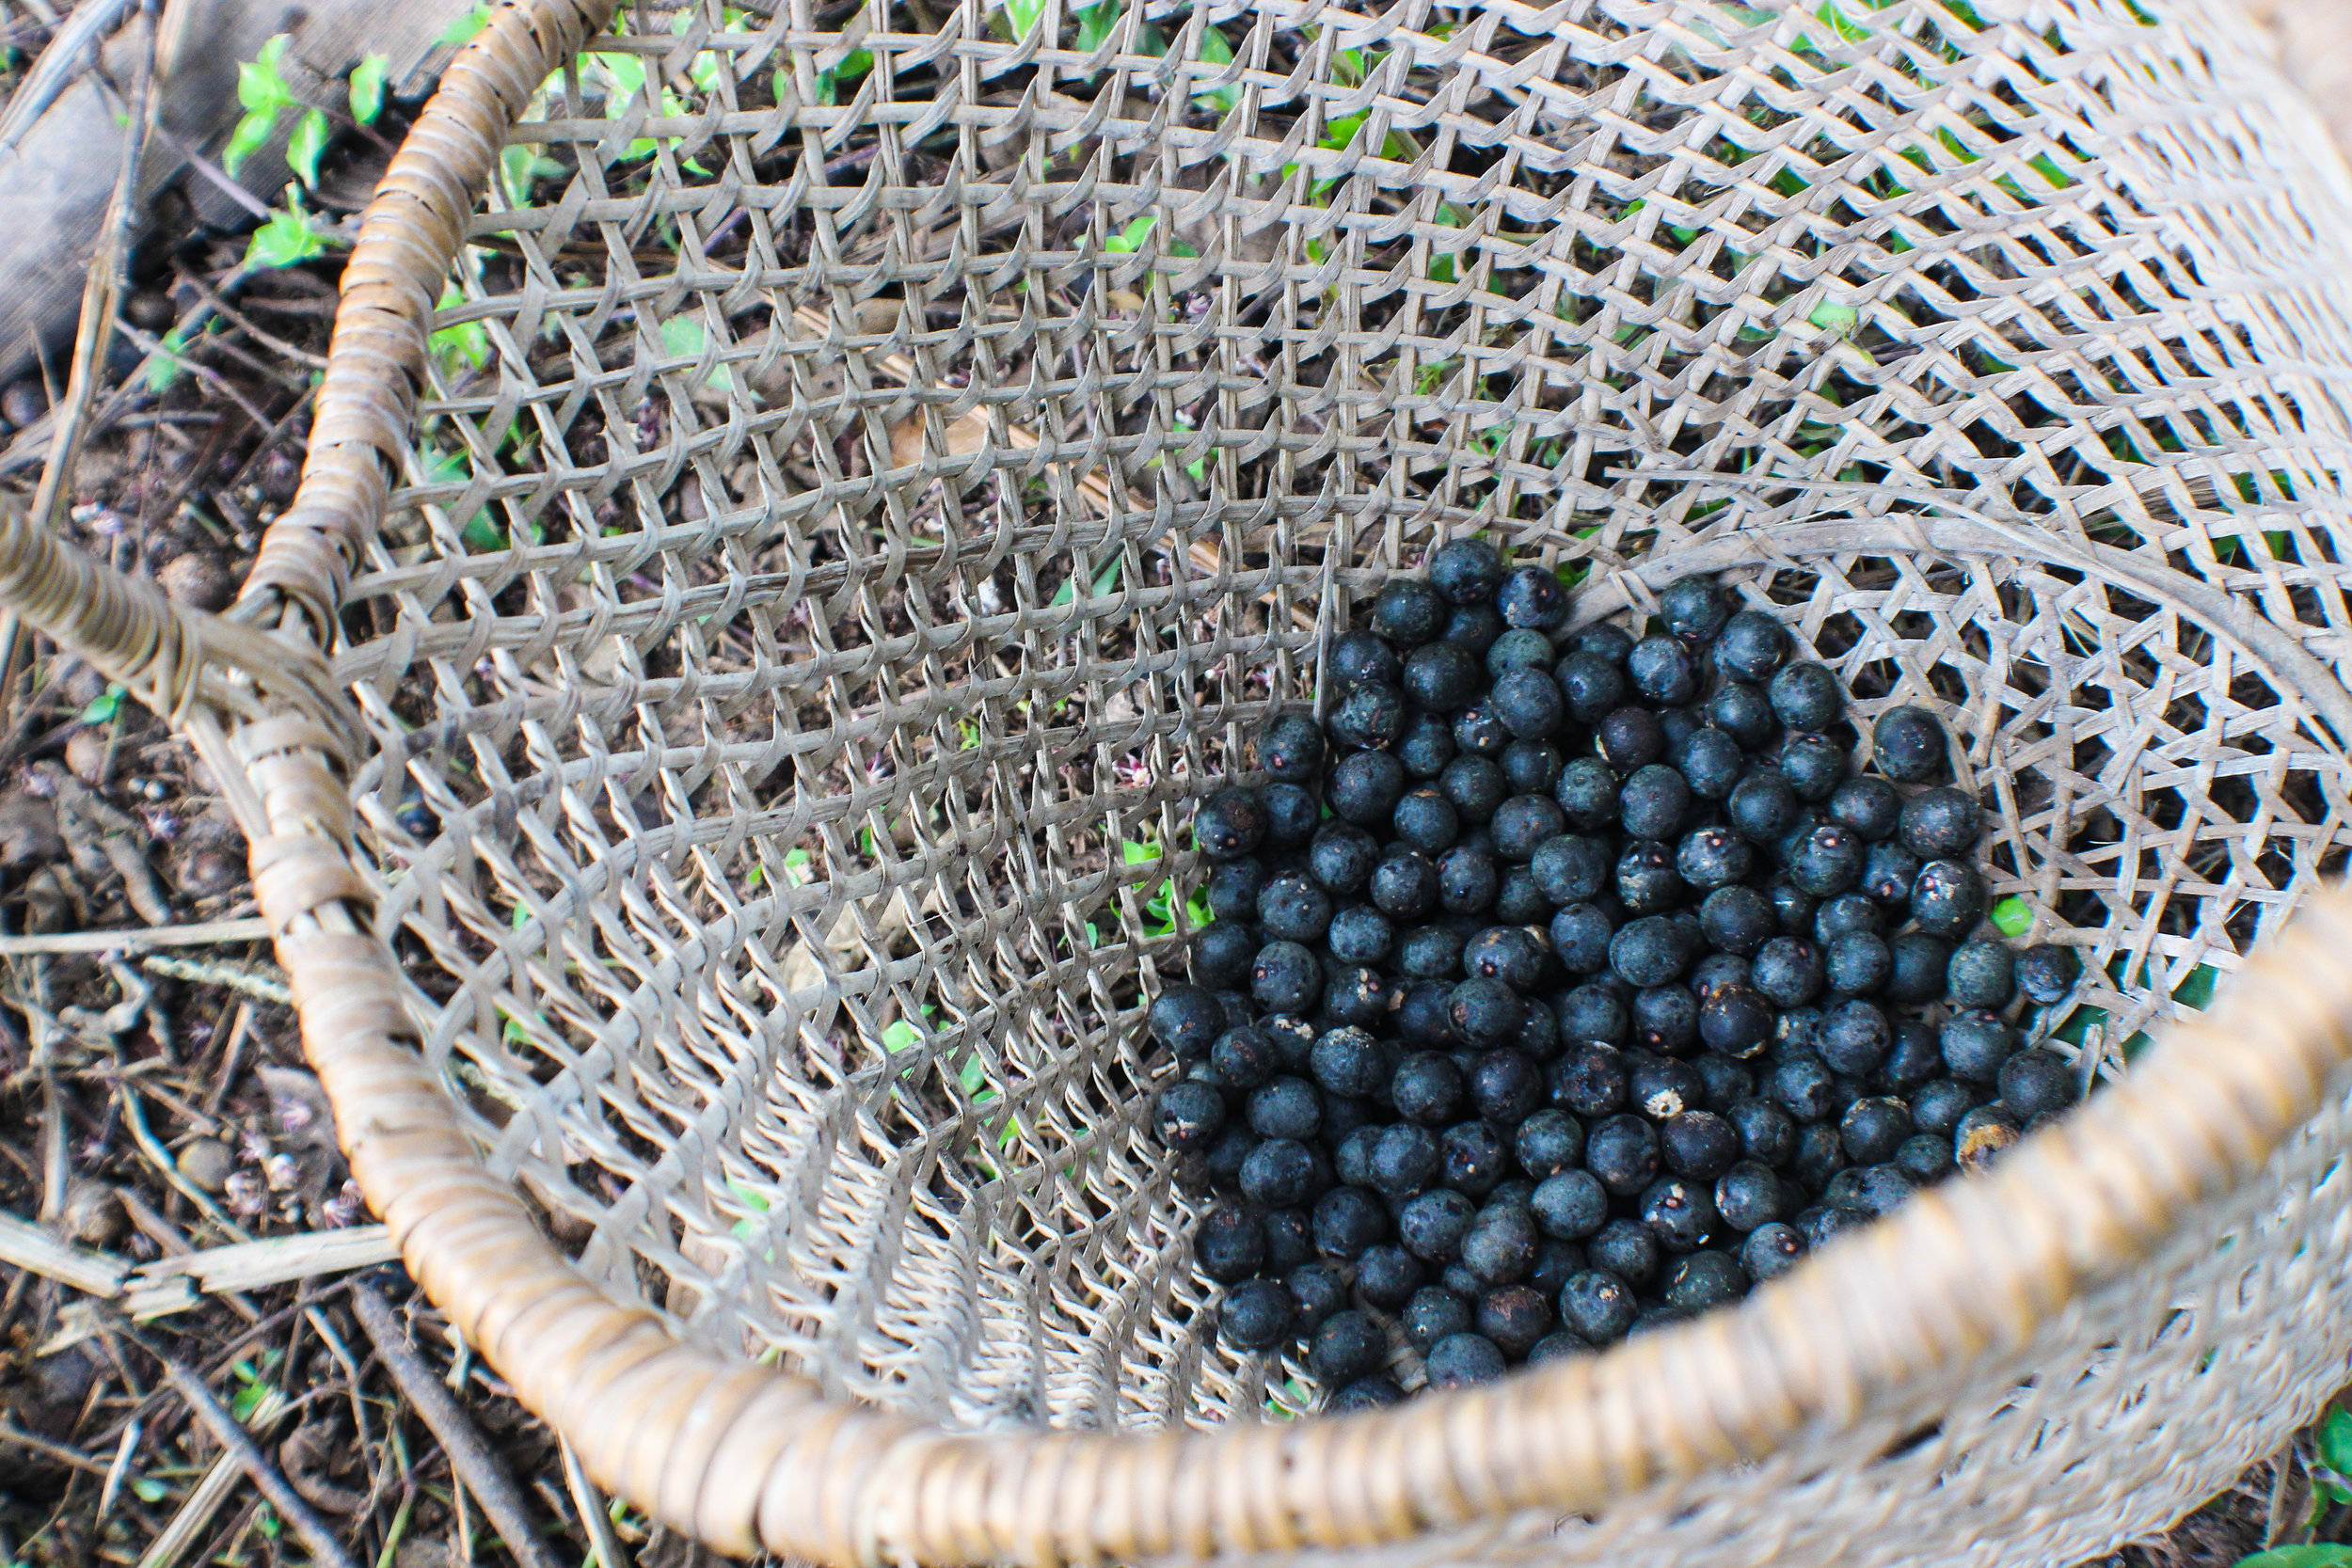 Açaí fruits ( Euterpe oleracea ) in a handwoven basket made from the aerial roots of an epiphyte.